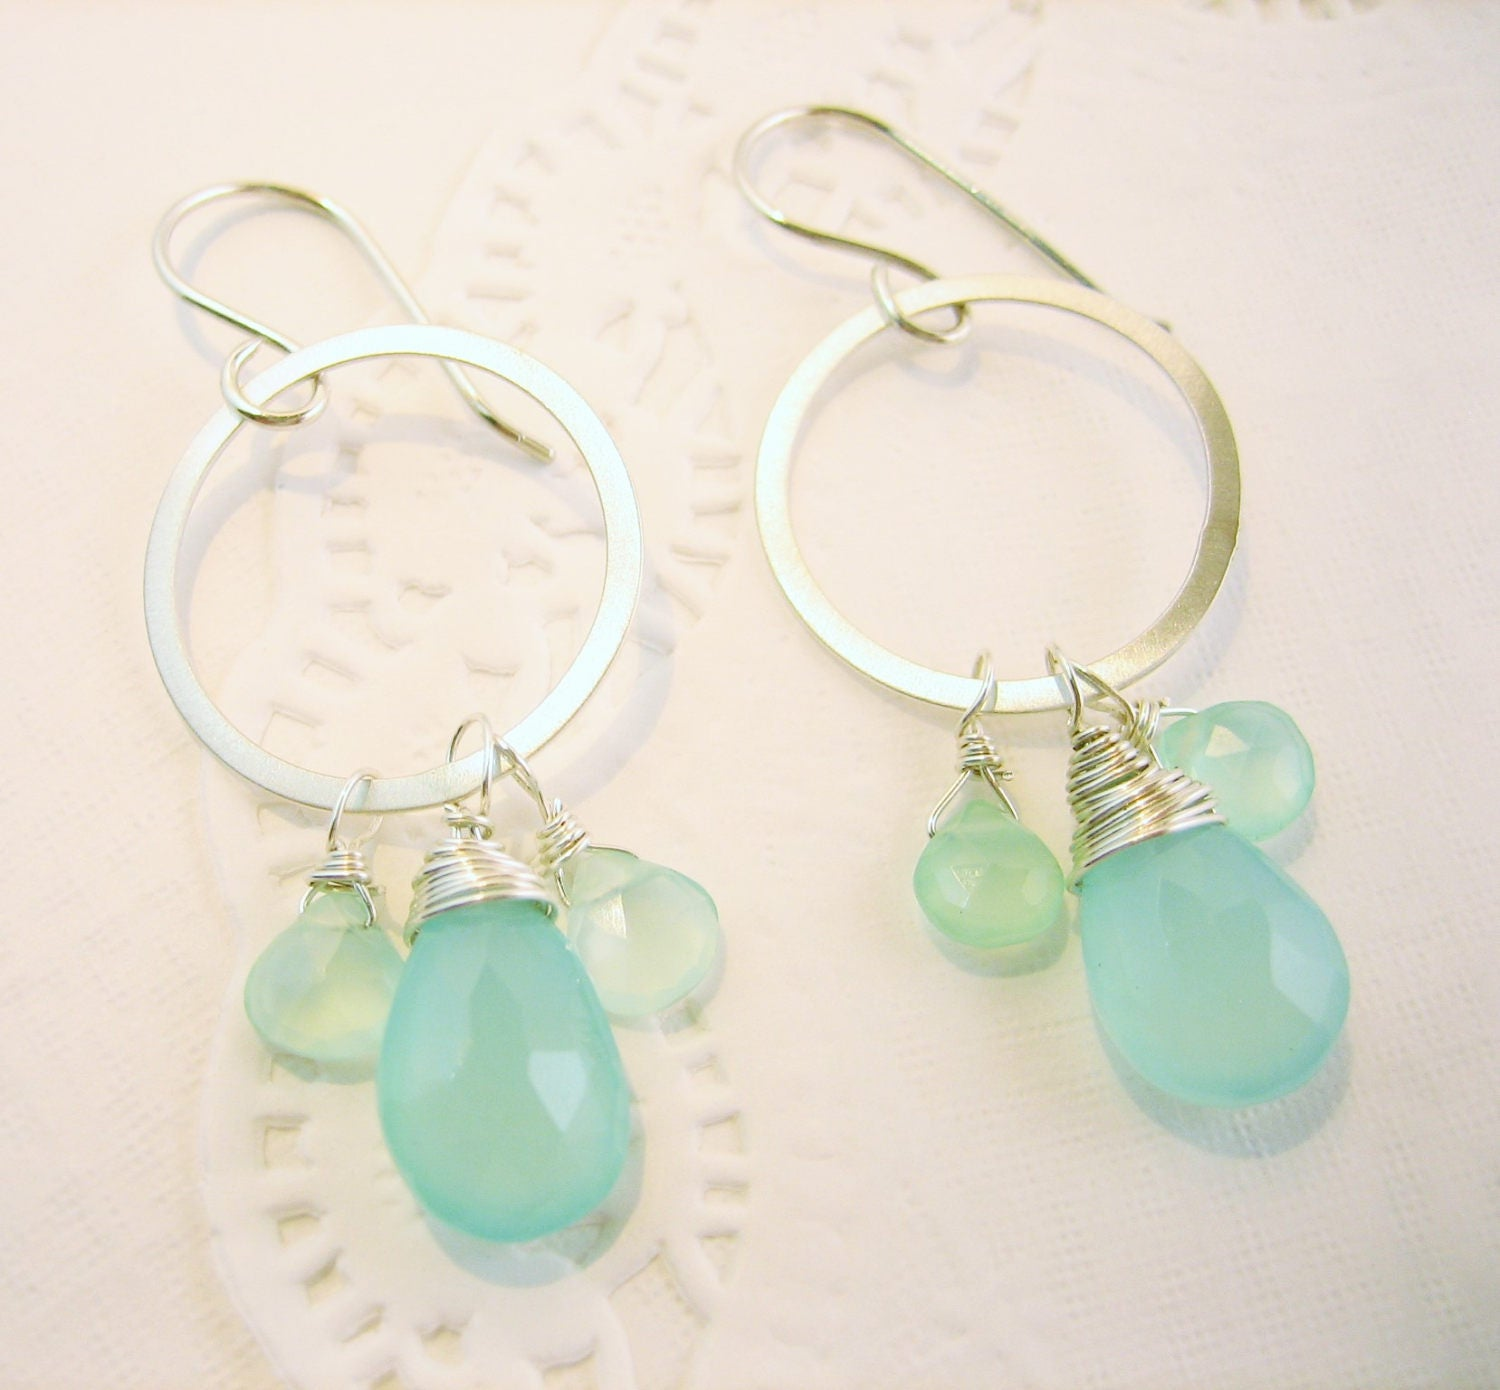 Boho - Gypsy hammered silver earrings with bright blue  green chalcedony, dangle open circle artisan made, misty metal earrings